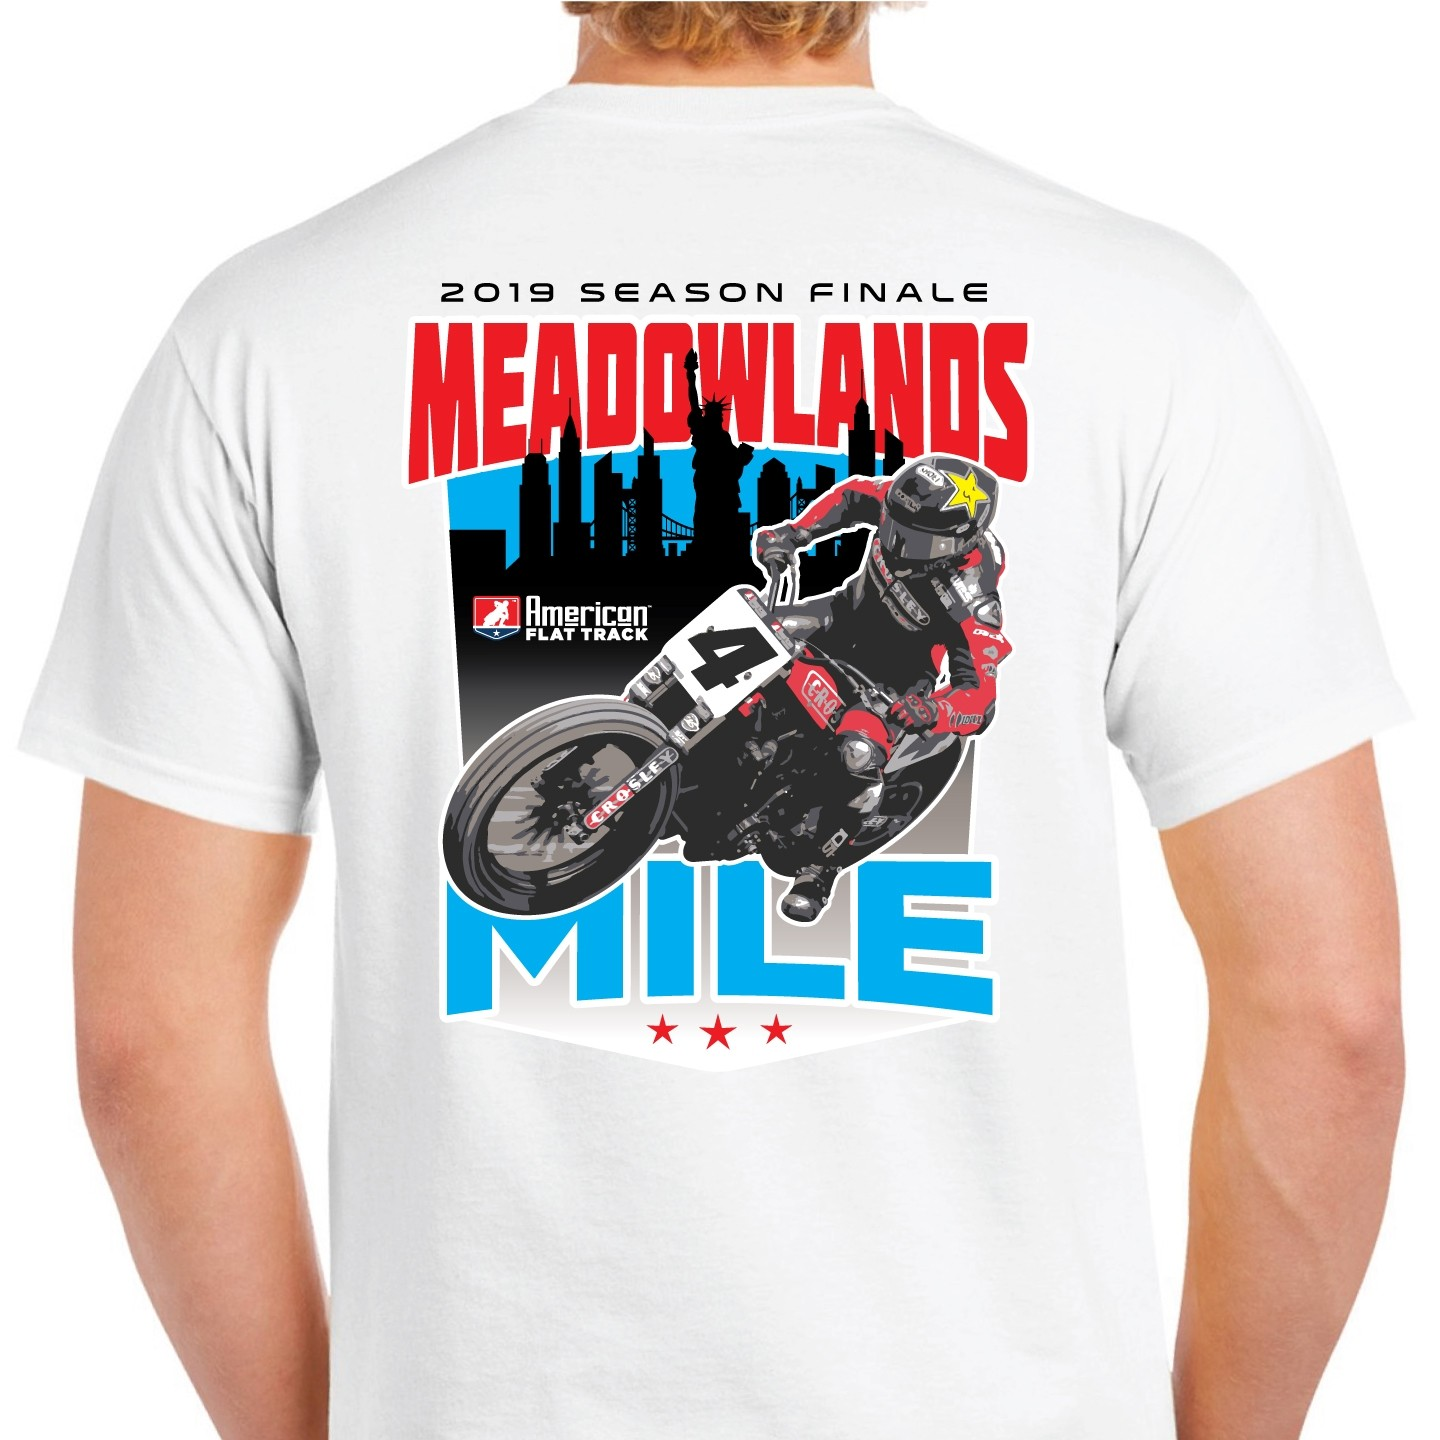 2019 Meadowlands Mile White Event T-Shirt